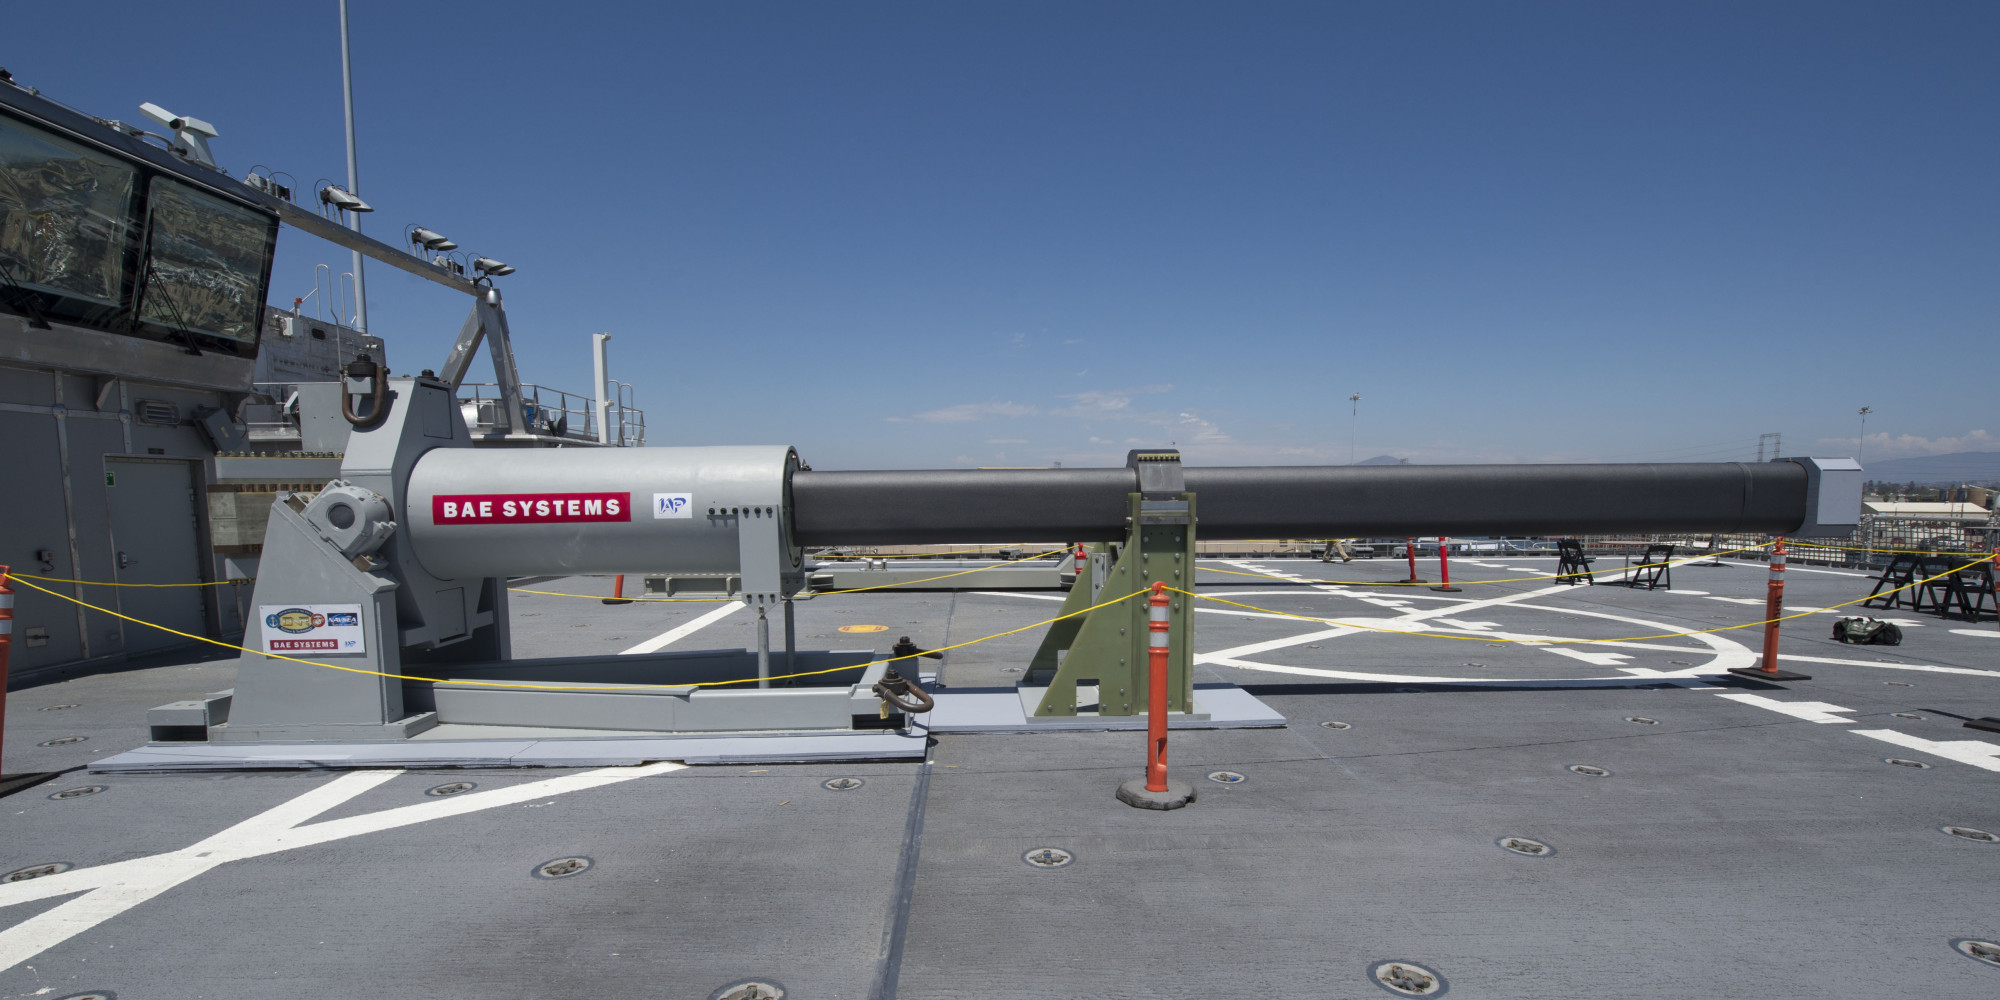 140708-N-ZK869-010 SAN DIEGO (July 8, 2014) One of the two electromagnetic railgun prototypes on display aboard the joint high speed vessel USS Millinocket (JHSV 3) in port at Naval Base San Diego. The railguns are being displayed in San Diego as part of the Electromagnetic Launch Symposium, which brought together representatives from the U.S. and allied navies, industry and academia to discuss directed energy technologies. (U.S. Navy photo by Mass Communication Specialist 2nd Class Kristopher Kirsop/Released)